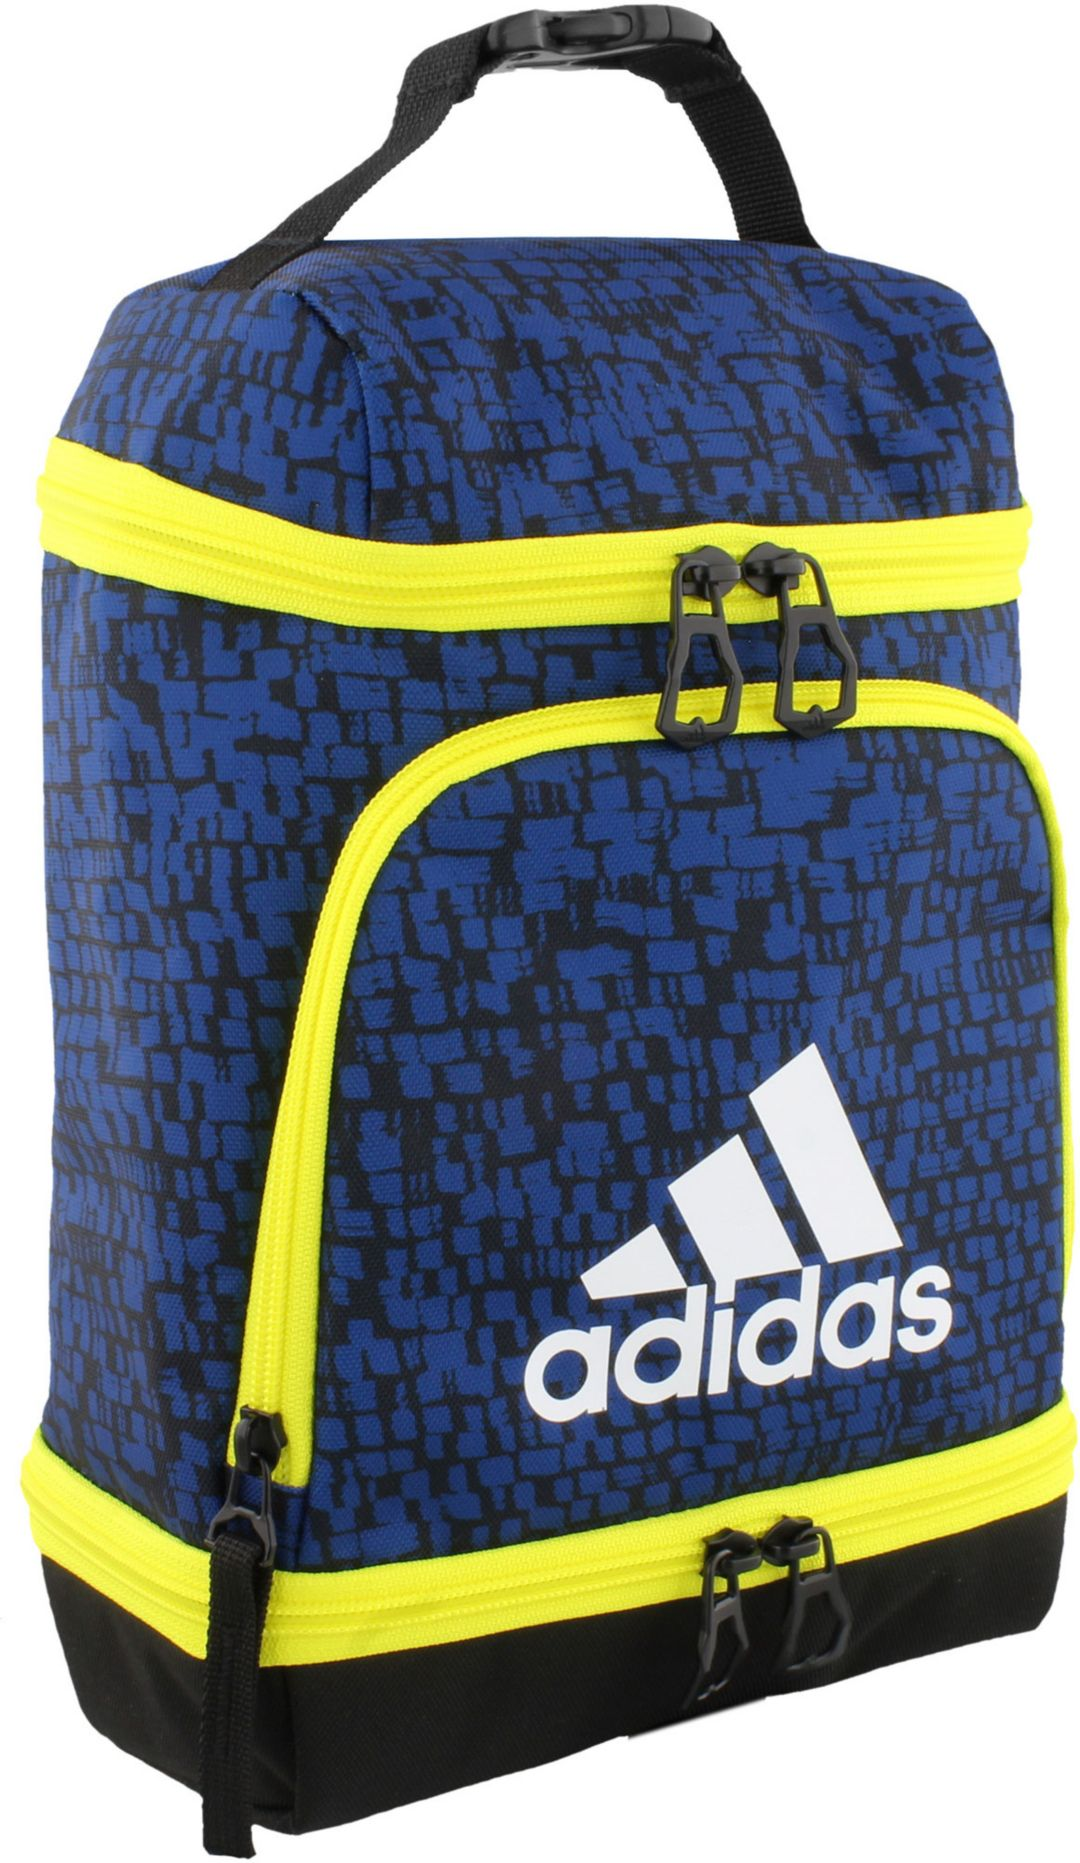 779fd9e9a8d adidas Excel Lunch Bag | DICK'S Sporting Goods